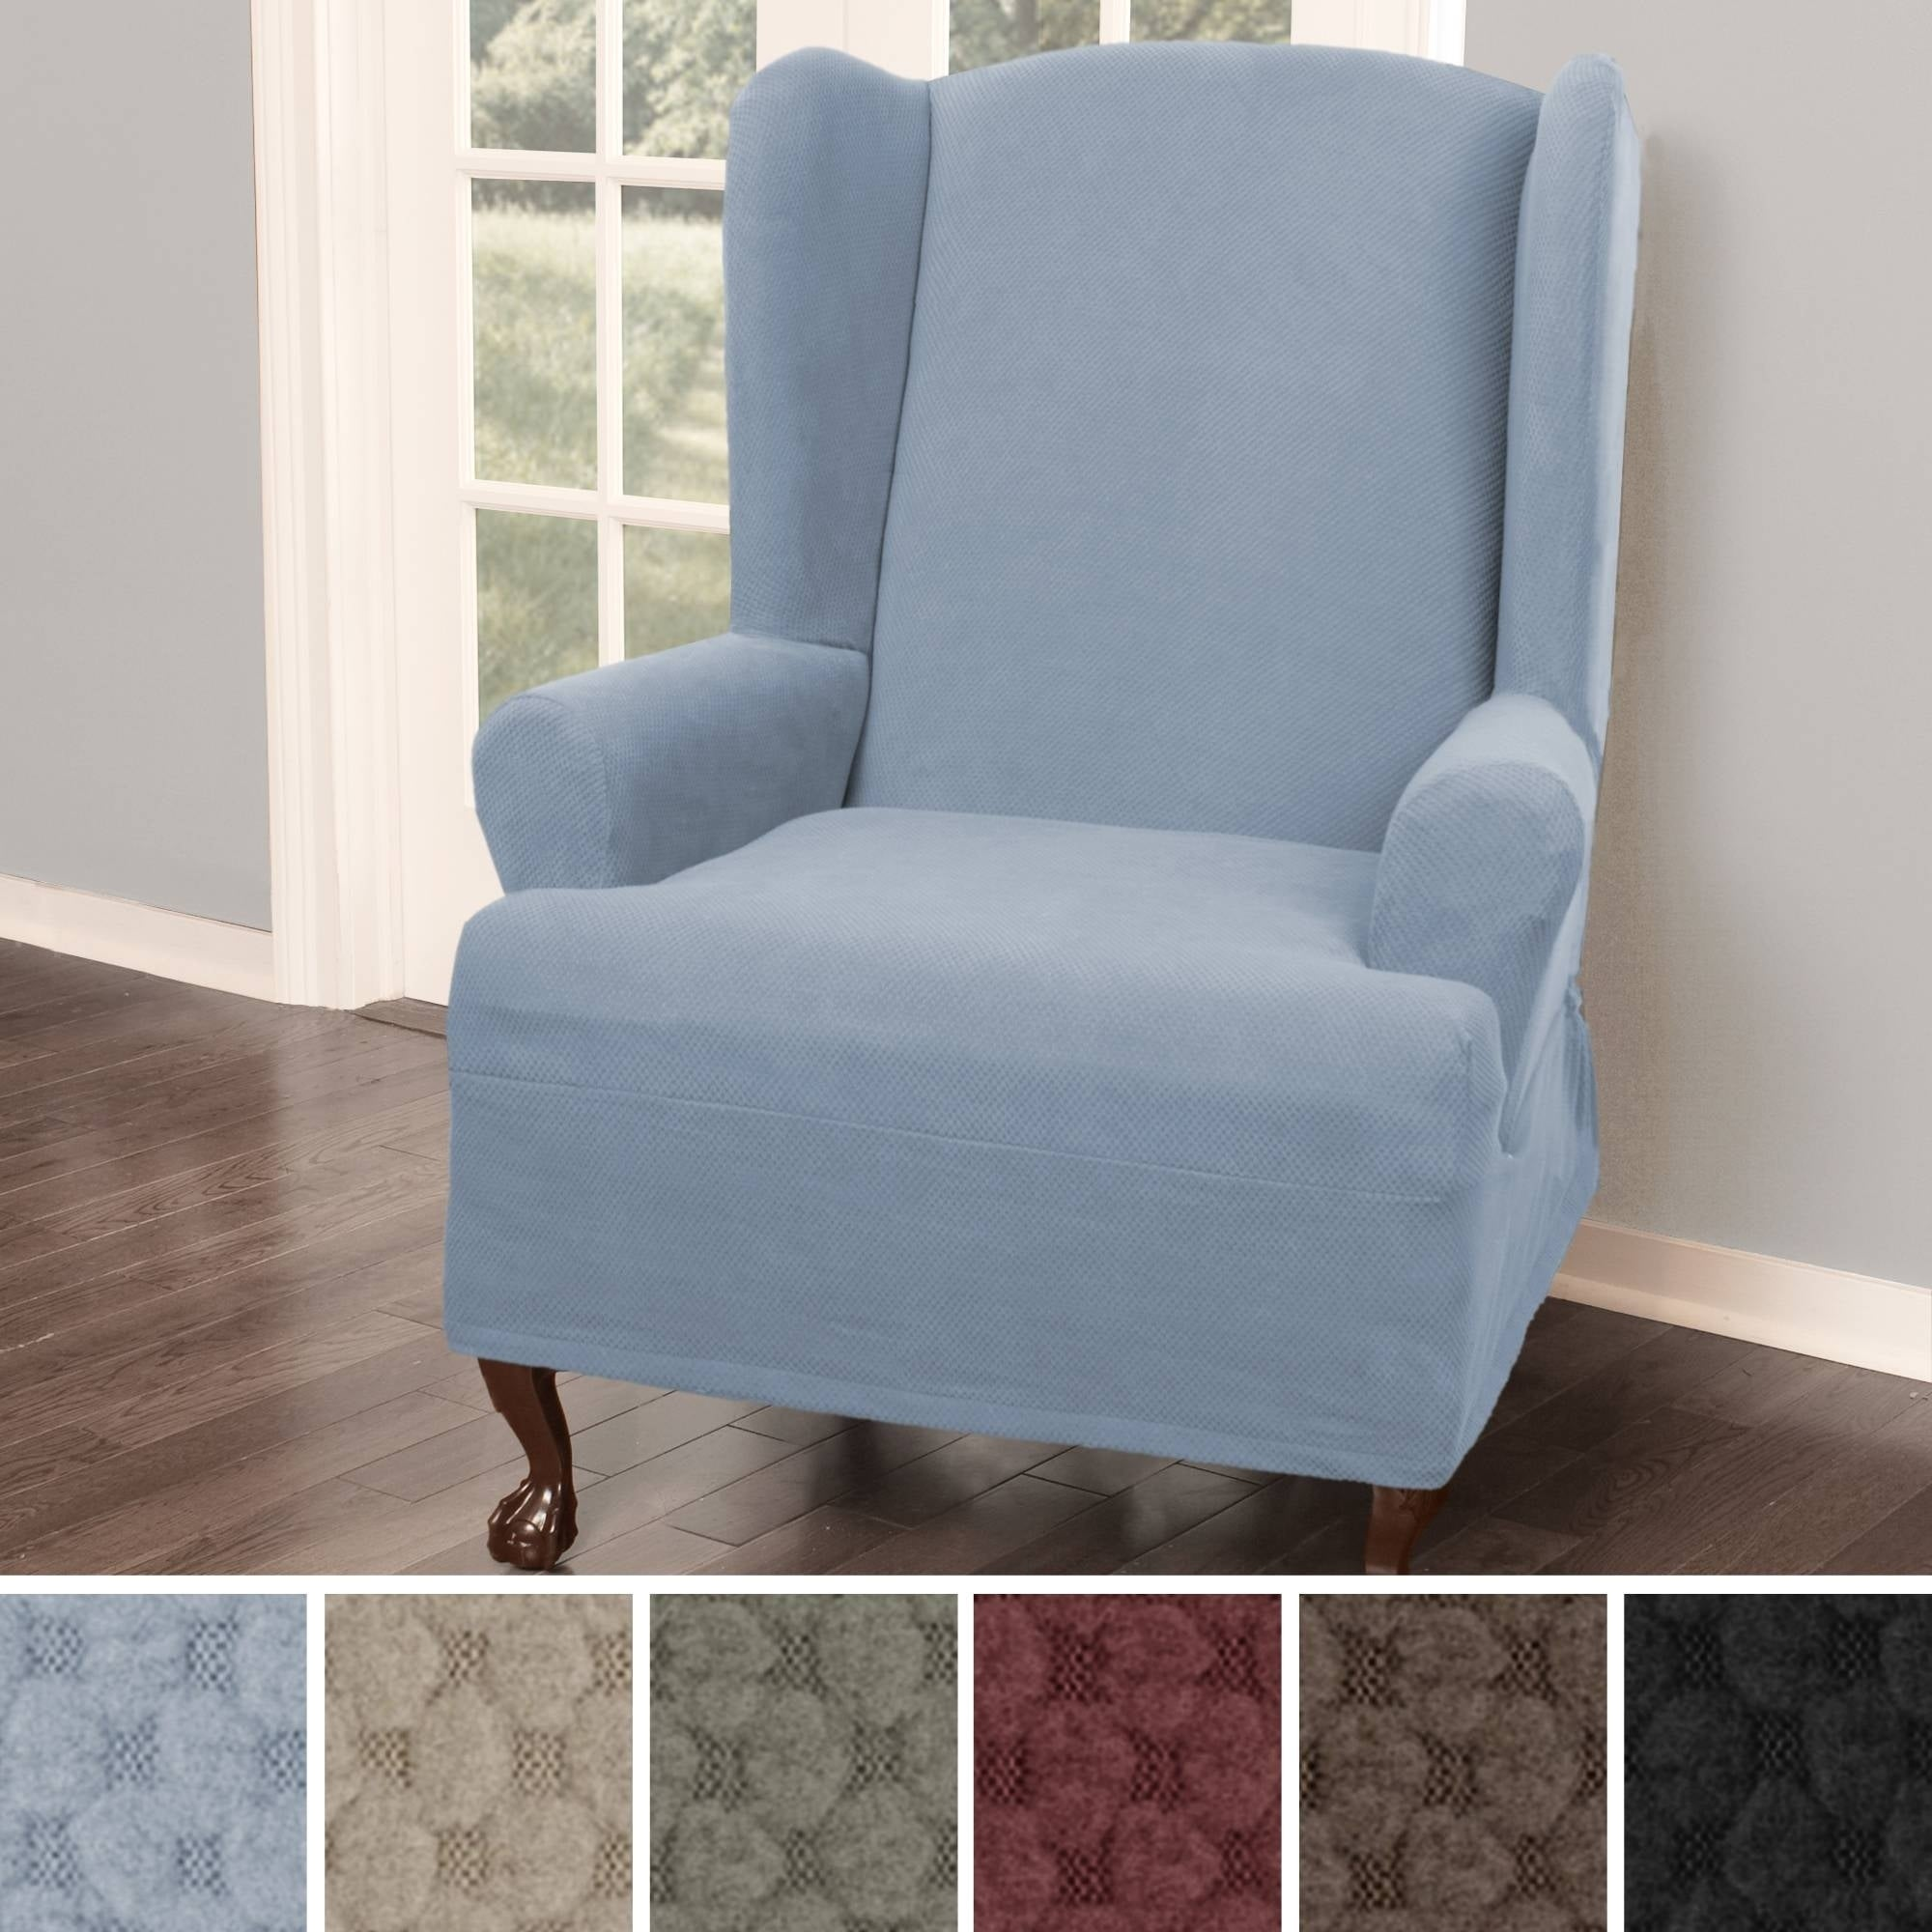 Awe Inspiring Maytex Pixel Stretch 1 Piece Wing Back Arm Chair Slipcover Pdpeps Interior Chair Design Pdpepsorg